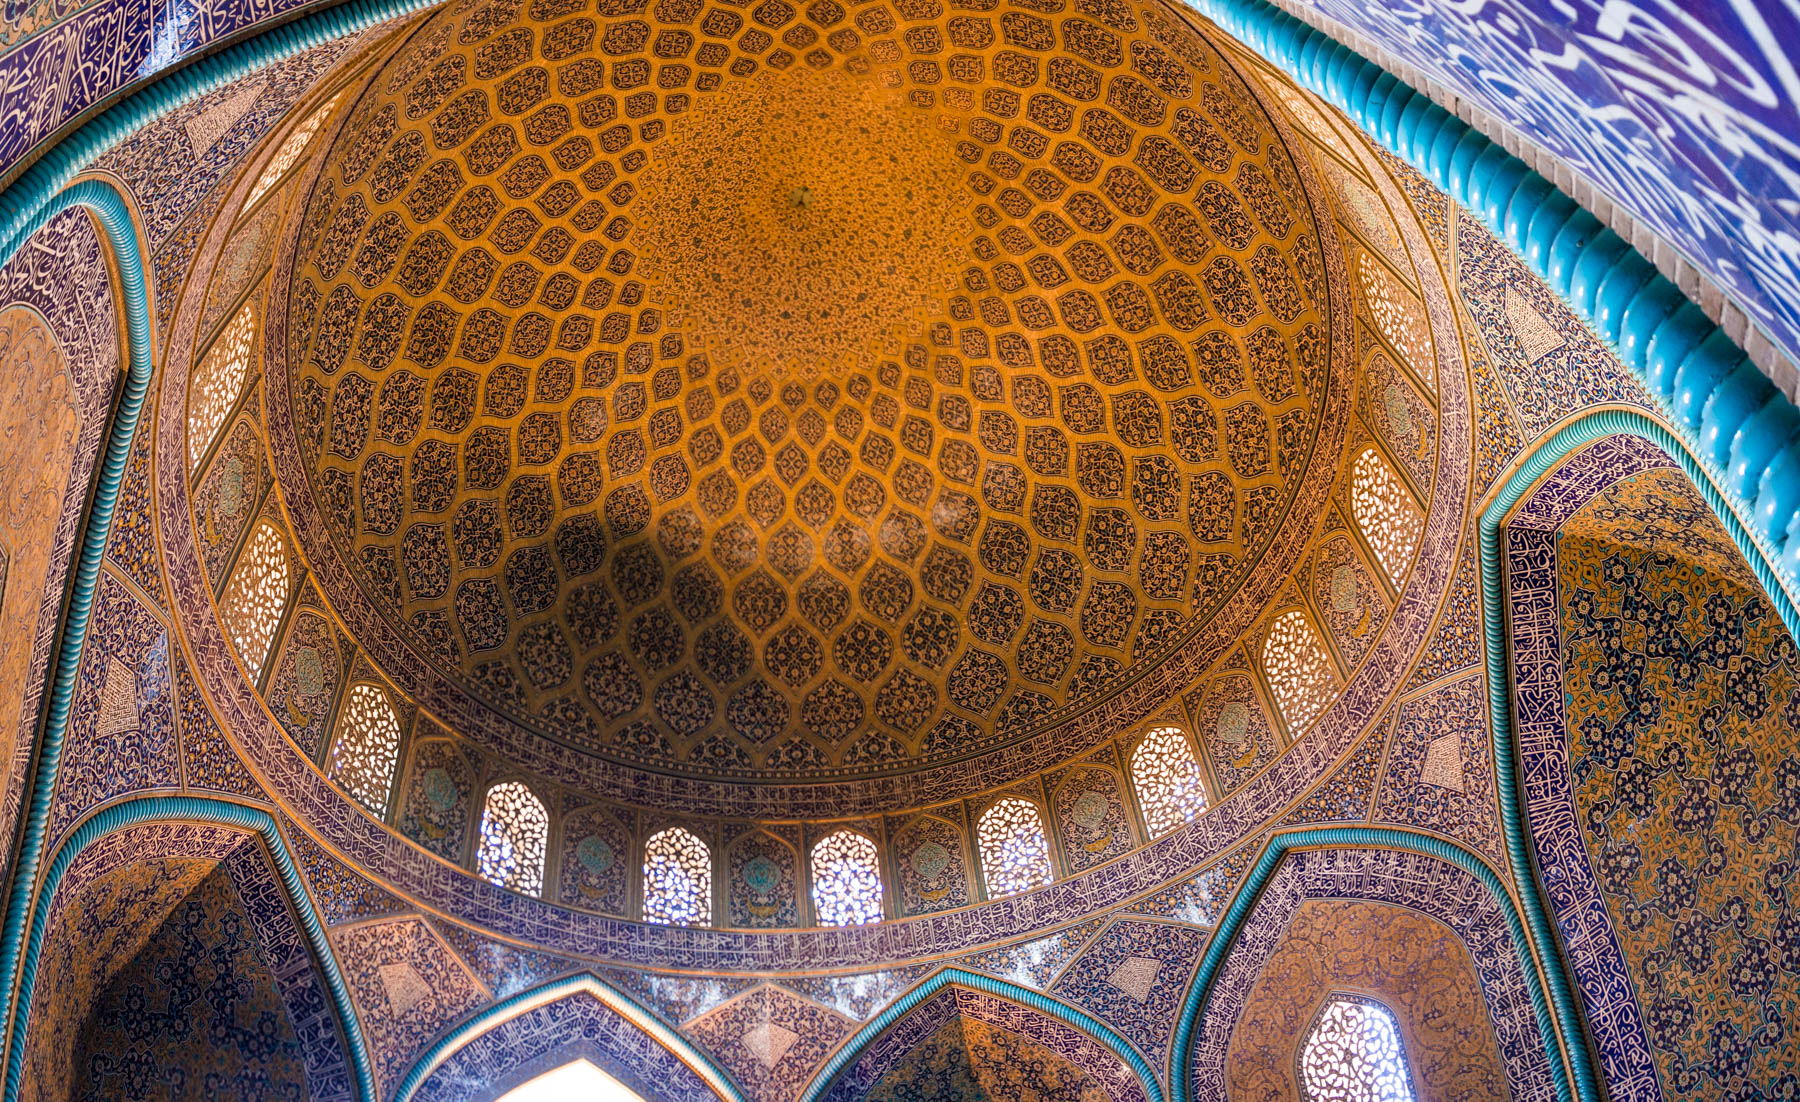 A two week Iran travel itinerary - The ceiling of the Sheikh Lotfallah mosque in Esfahan, Iran - Lost With Purpose